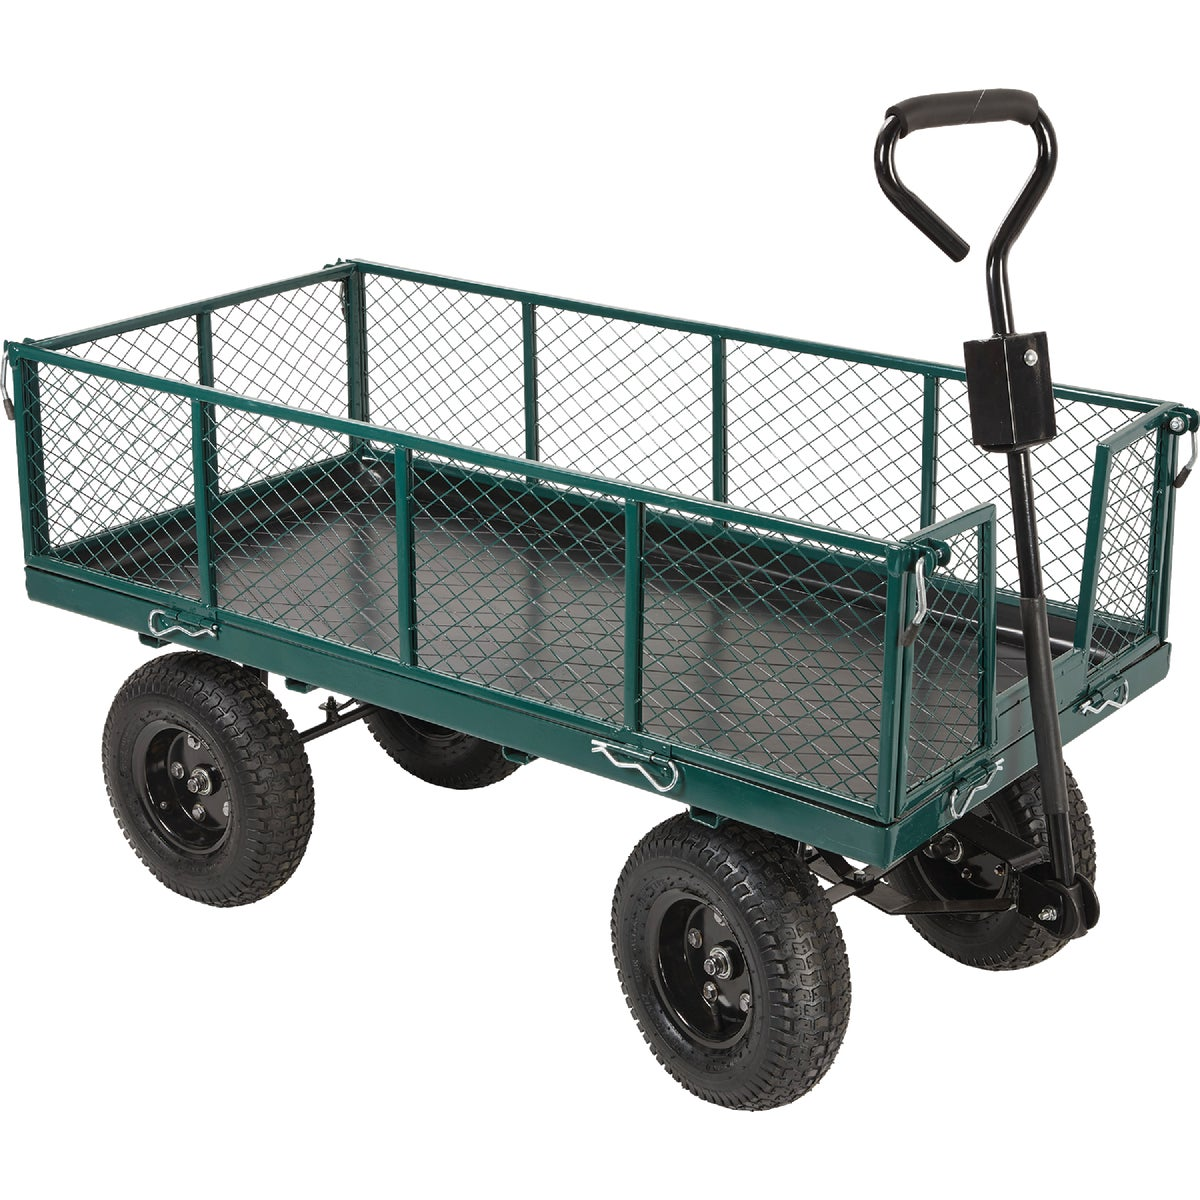 STEEL YARD CART W/SIDES - TC4205C by Do it Best